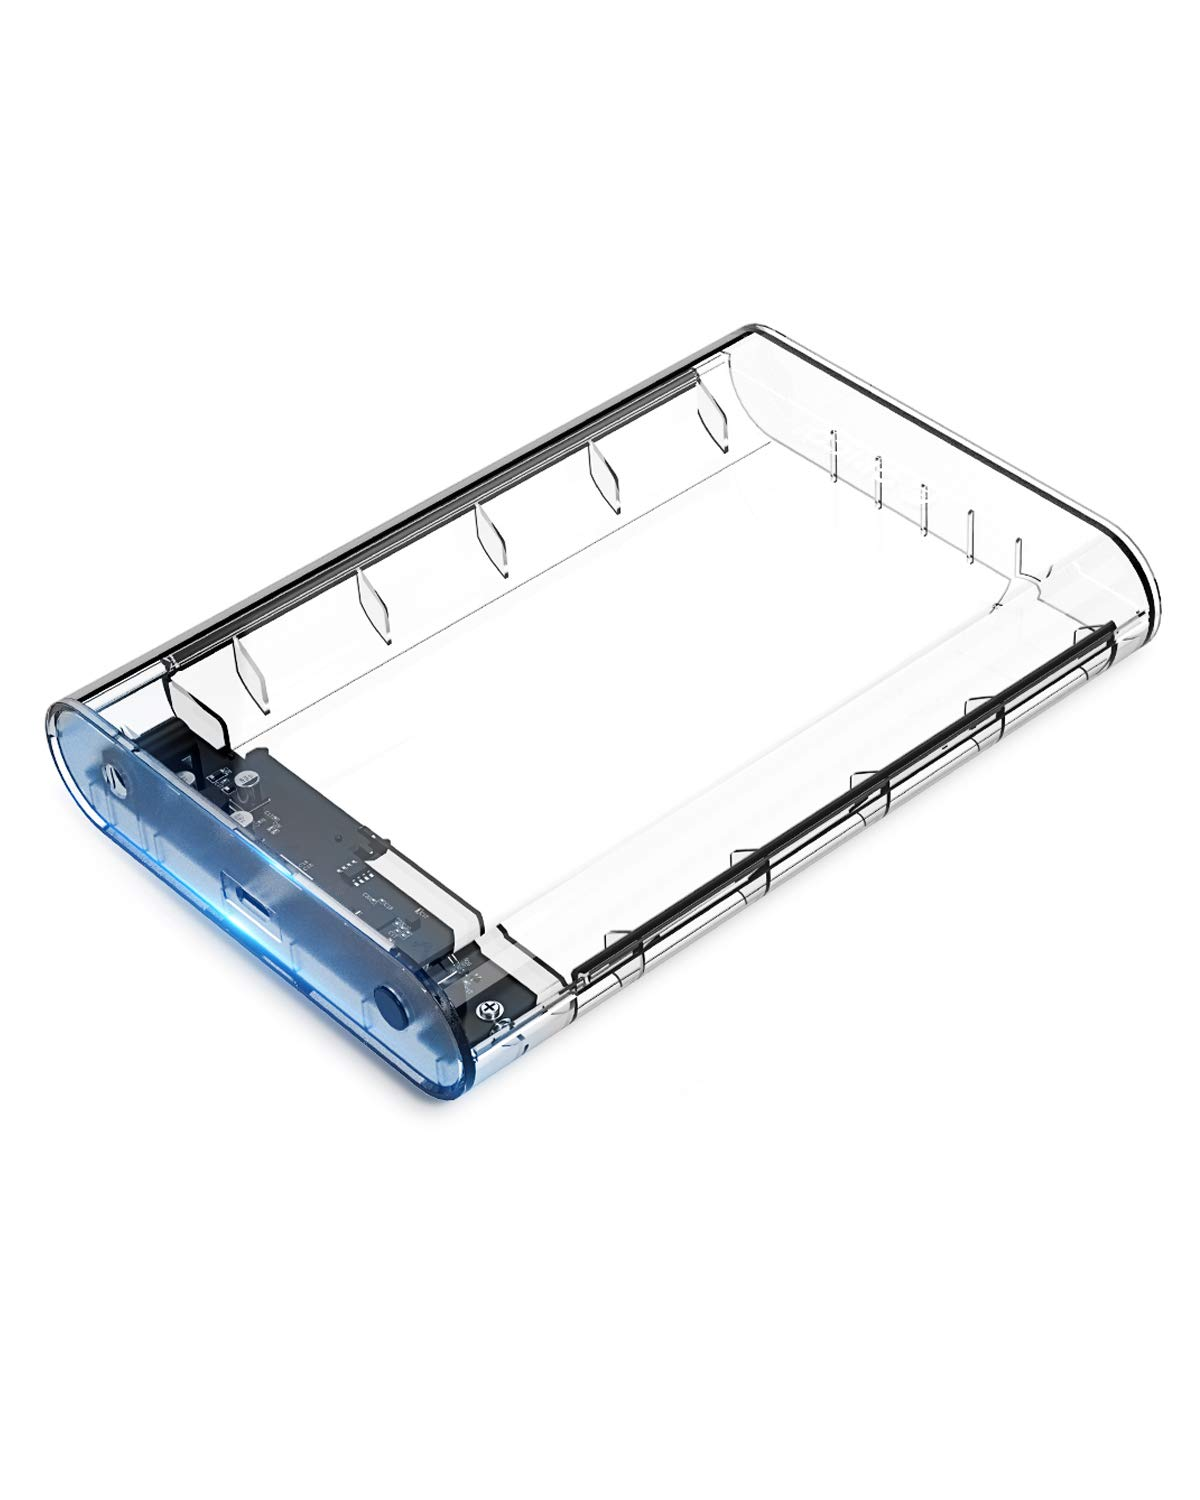 ORICO 3.5 inch USB C Hard Drive Enclosure for SATA HDD Support Max 8TB UASP SATA III Tool Free - Clear